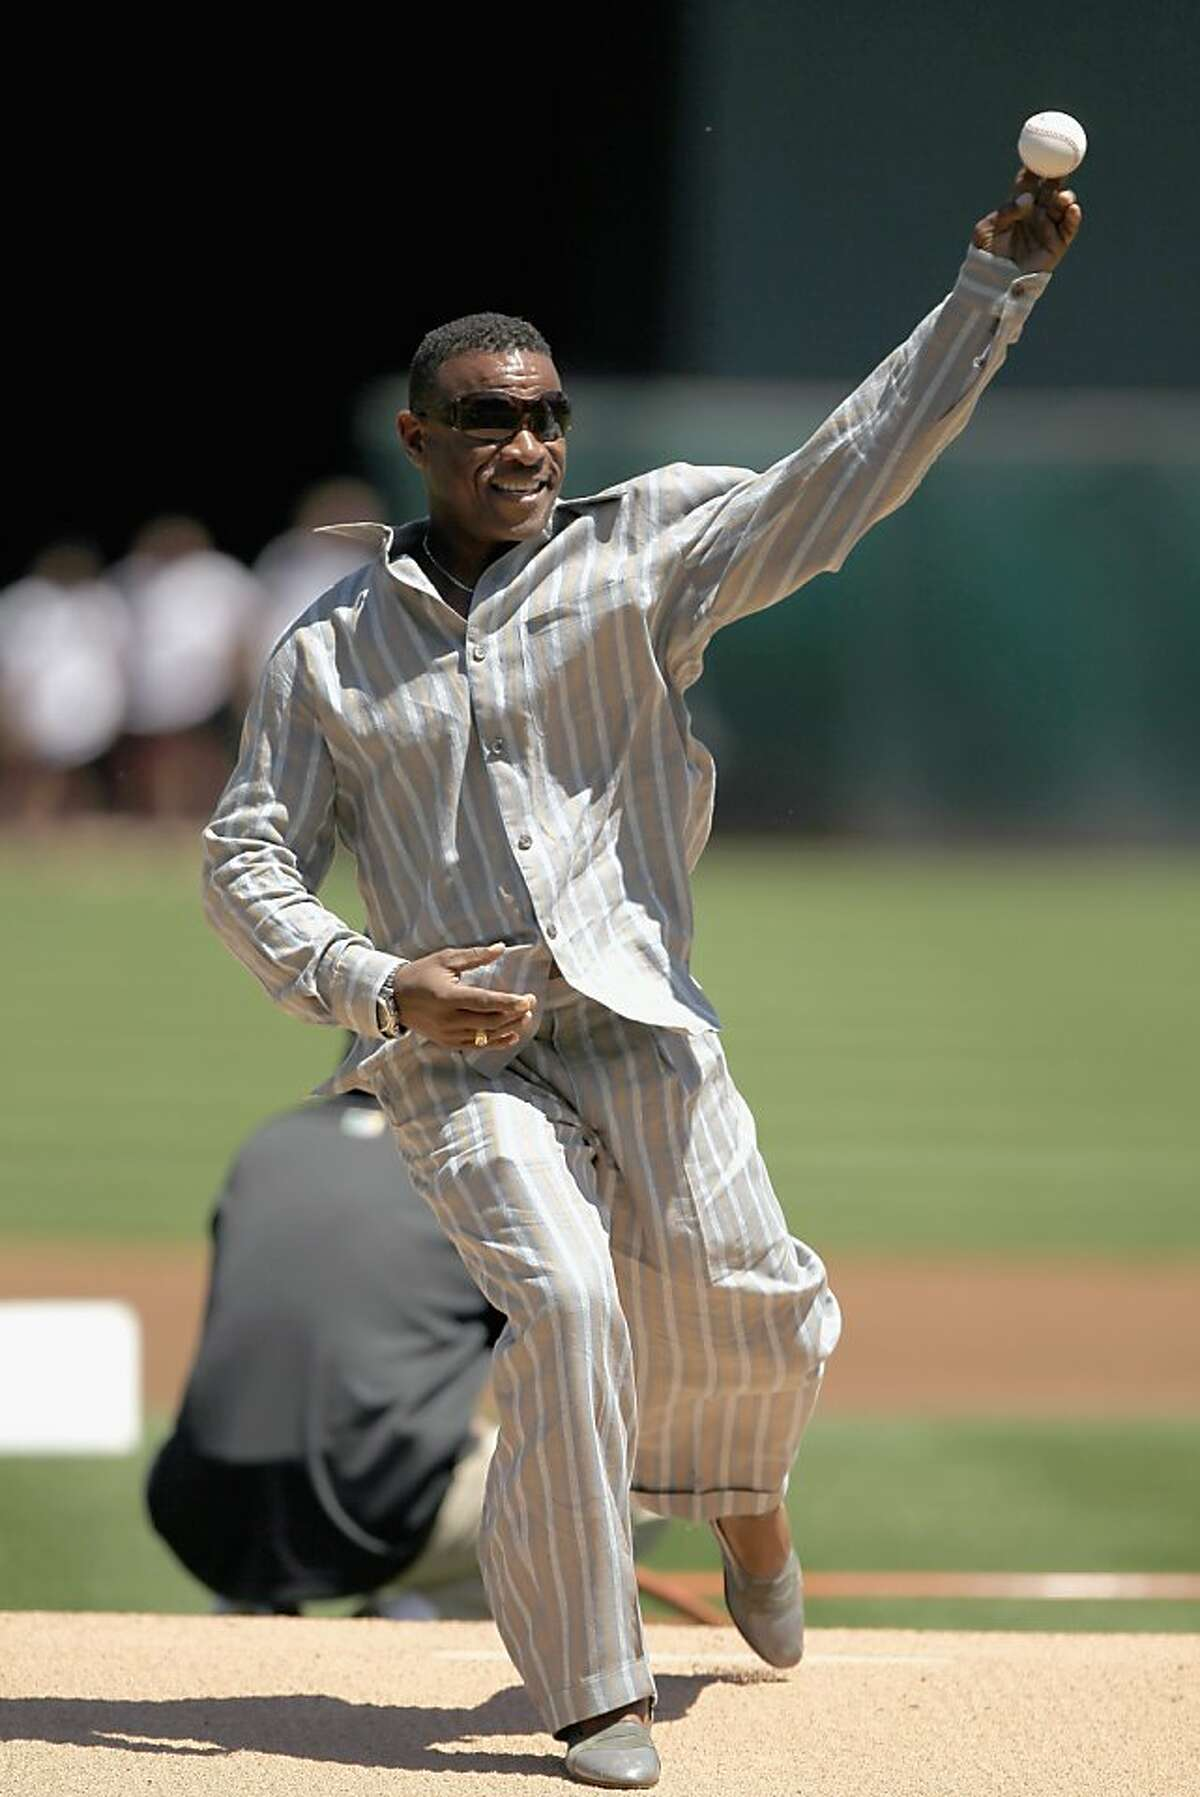 OAKLAND, CA - APRIL 30: Rickey Henderson throws out the ceremonial first pitch before the Oakland Athletics' game against the Texas Rangers at Oakland-Alameda County Coliseum on April 30, 2011 in Oakland, California.